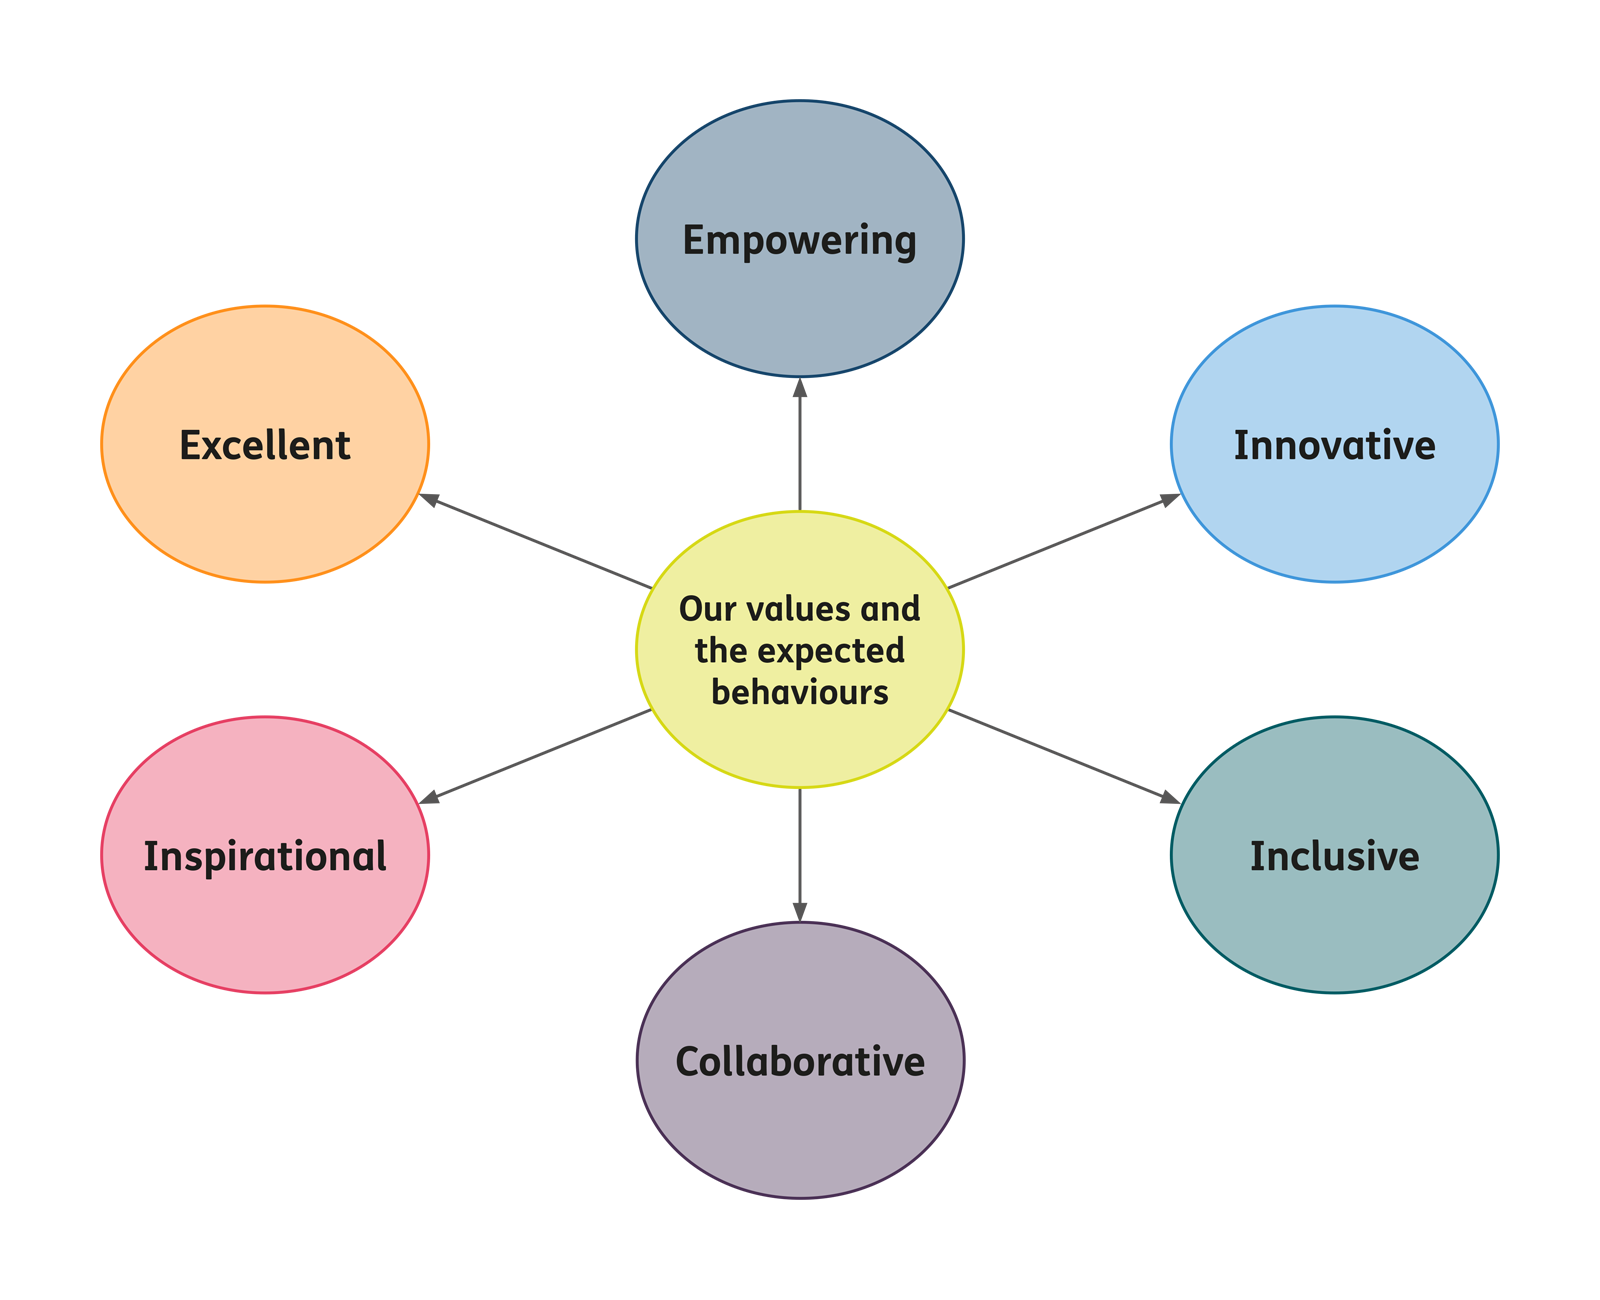 Our values and the expected behaviours: empowering, innovative, inclusive, collaborative, inspirational and excellent